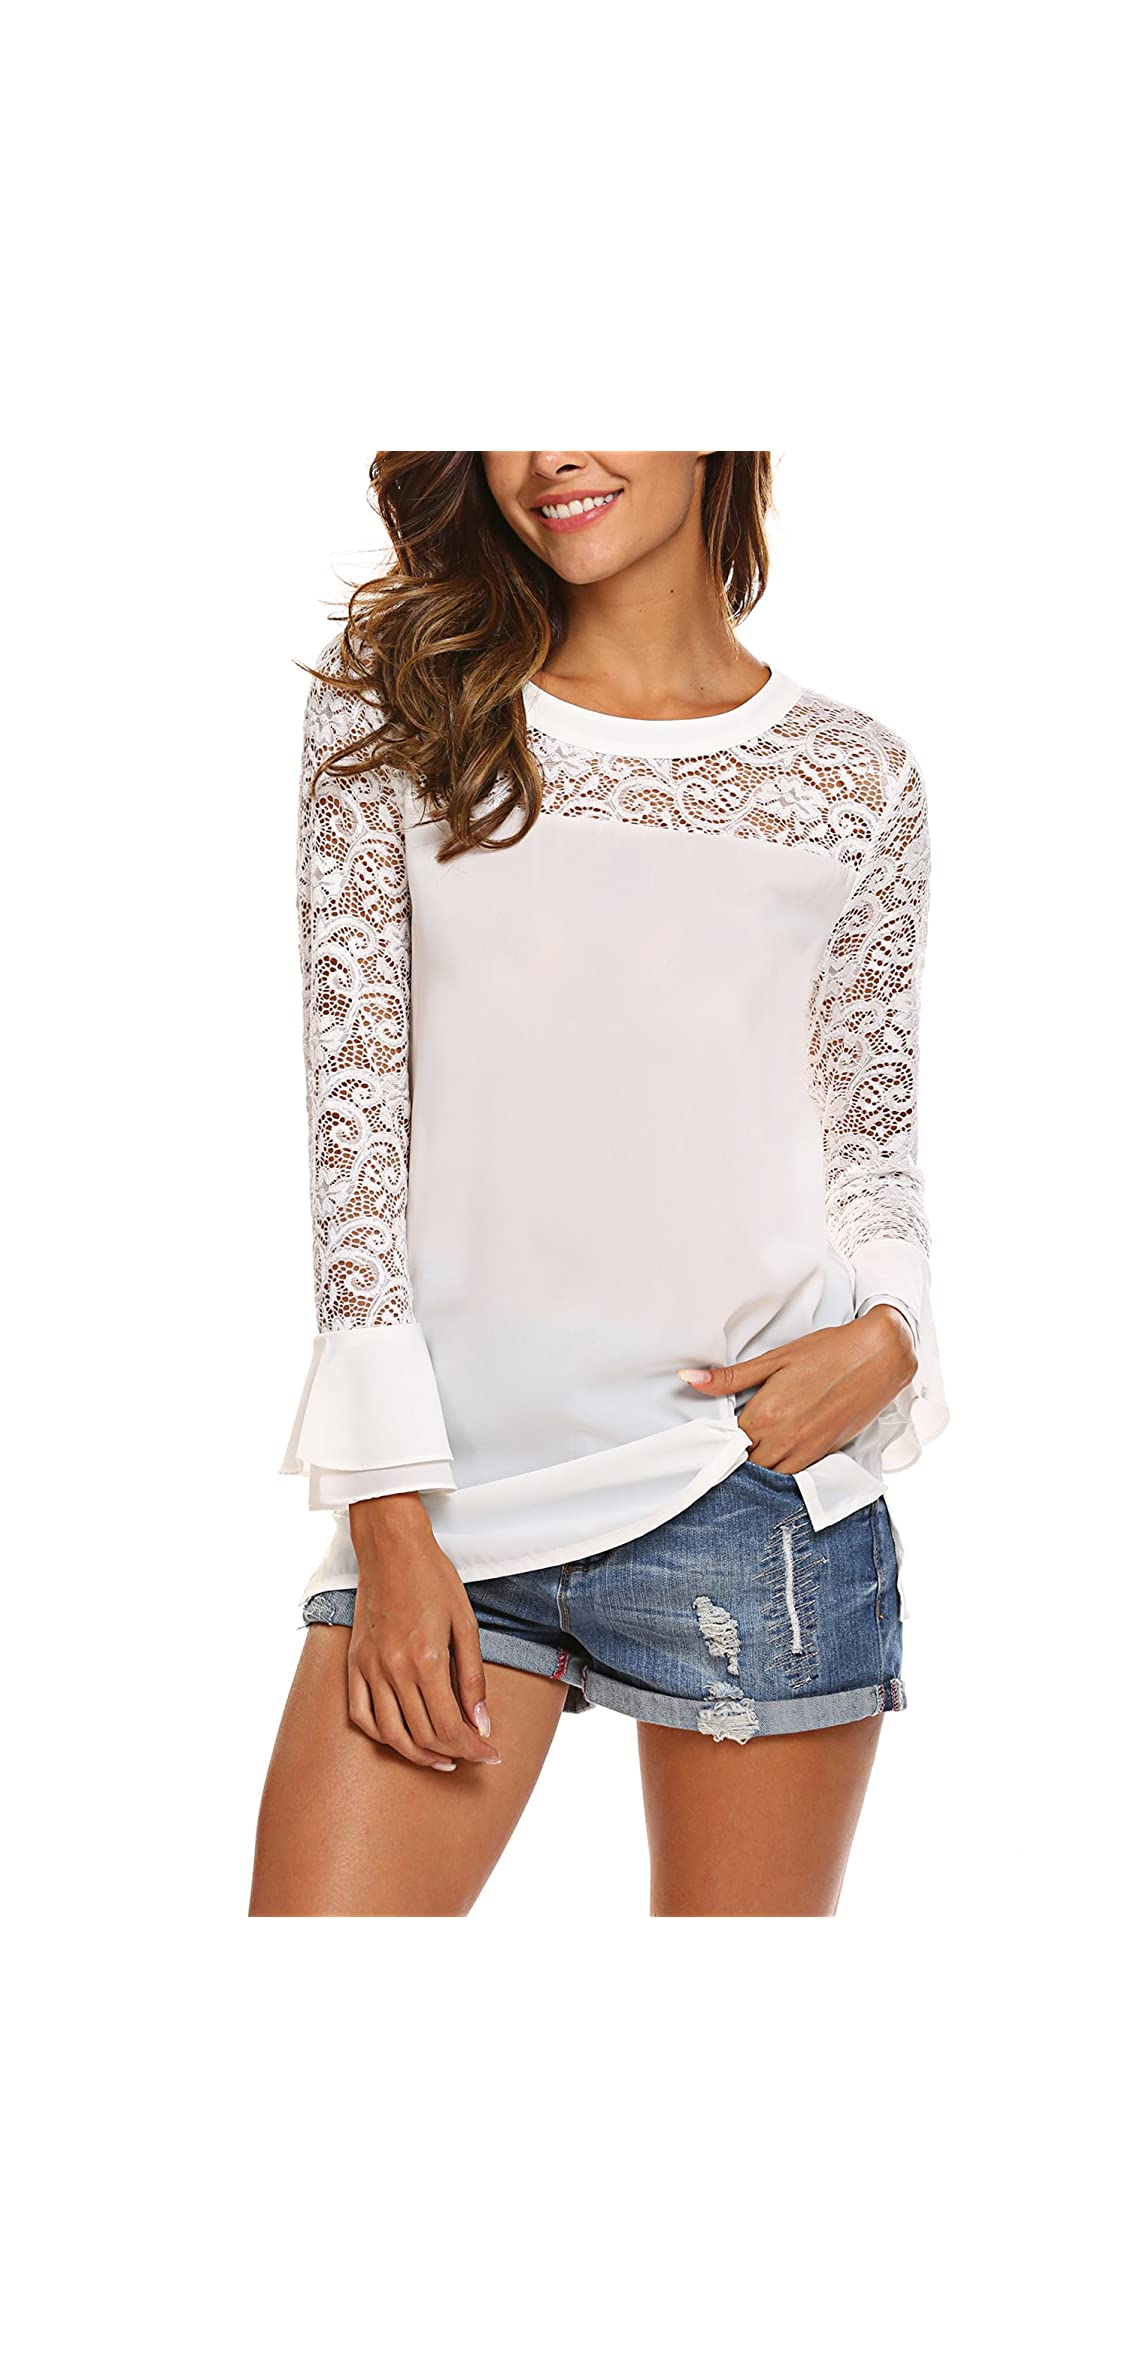 Lace Top Women's / Ruffle Bell Sleeve Blouse Boatneck